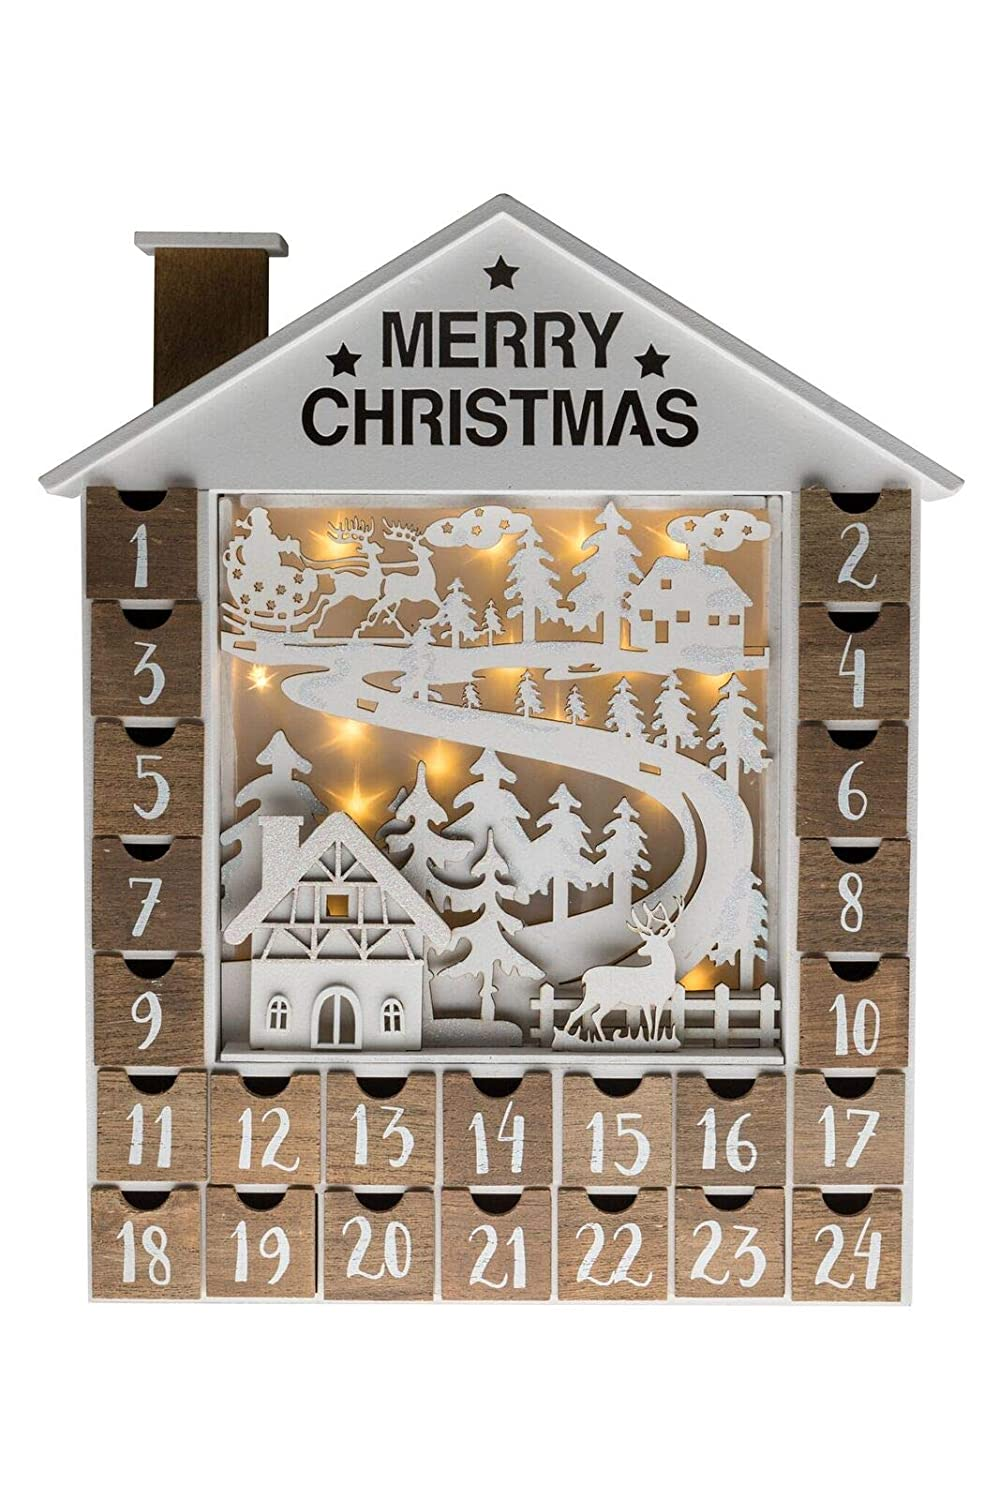 Clever Creations Advent Calendar Christmas Decoration with Lights Traditional Wooden House with 24 Drawers | Festive Holiday Decor | Beautiful Christmas Scene 806810338612